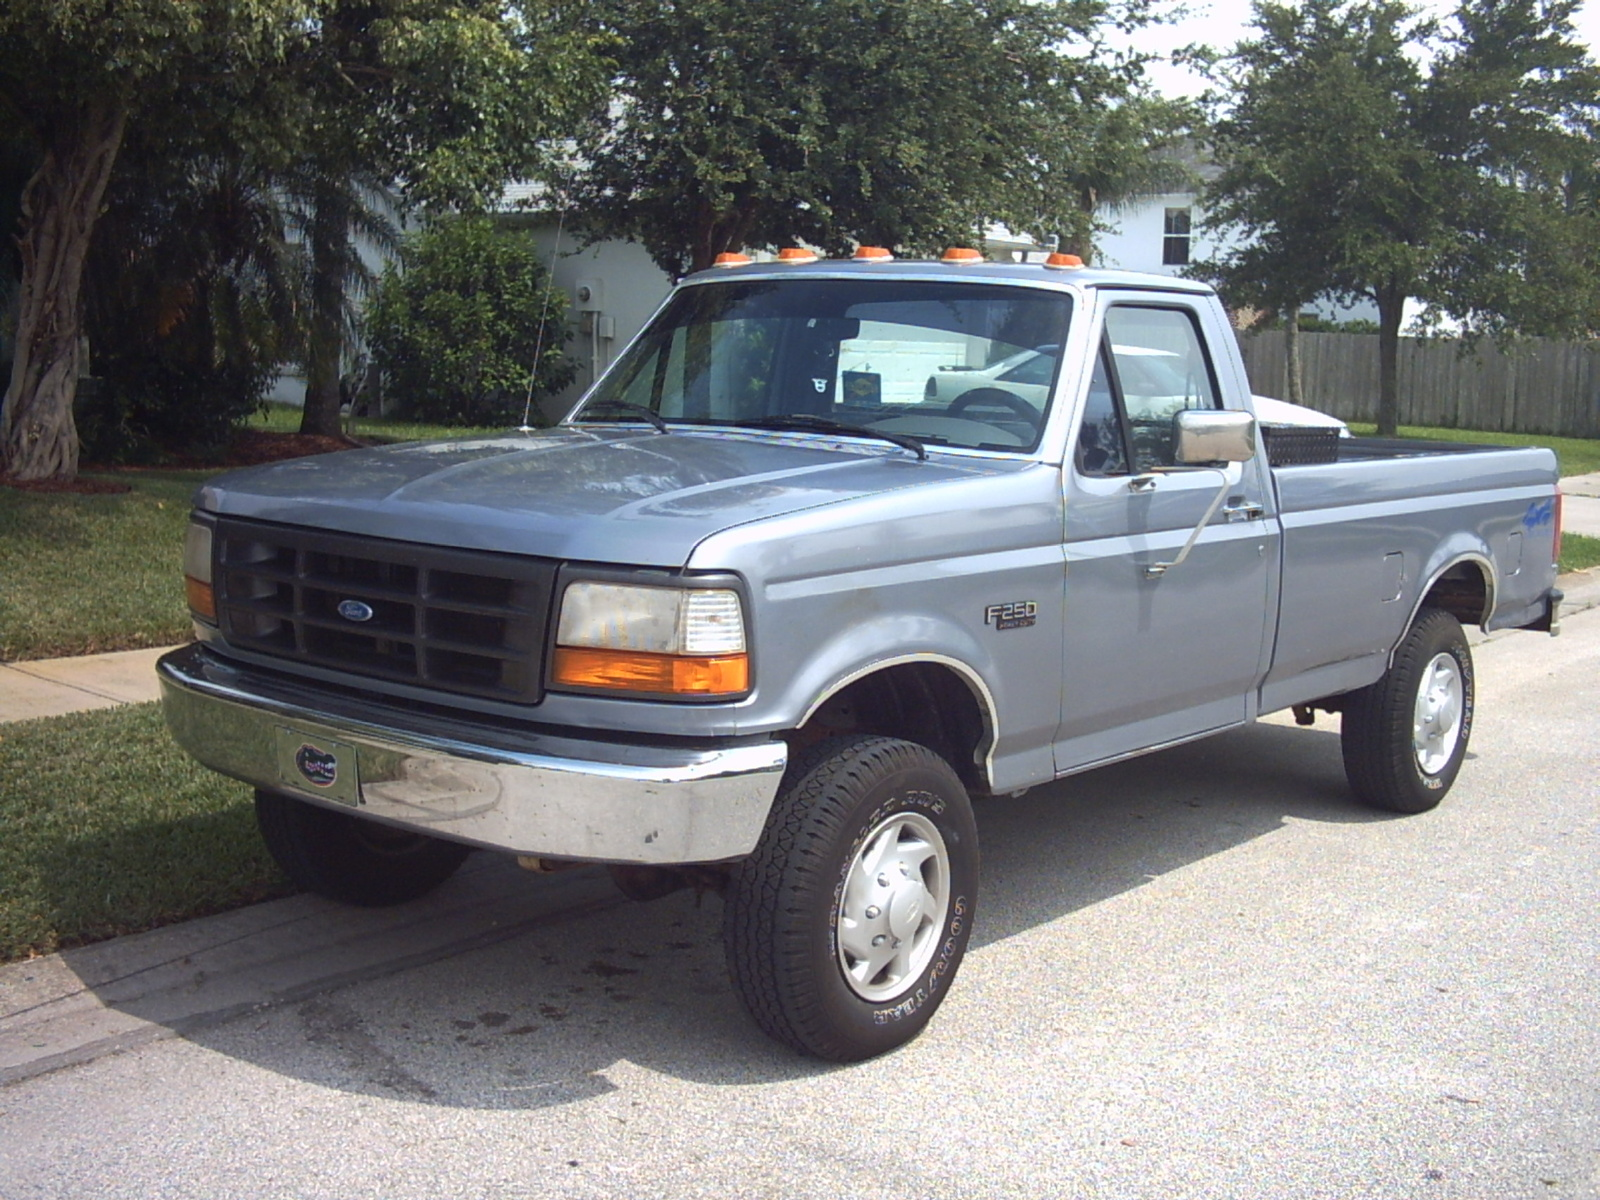 1997 ford f 250 information and photos zombiedrive. Black Bedroom Furniture Sets. Home Design Ideas